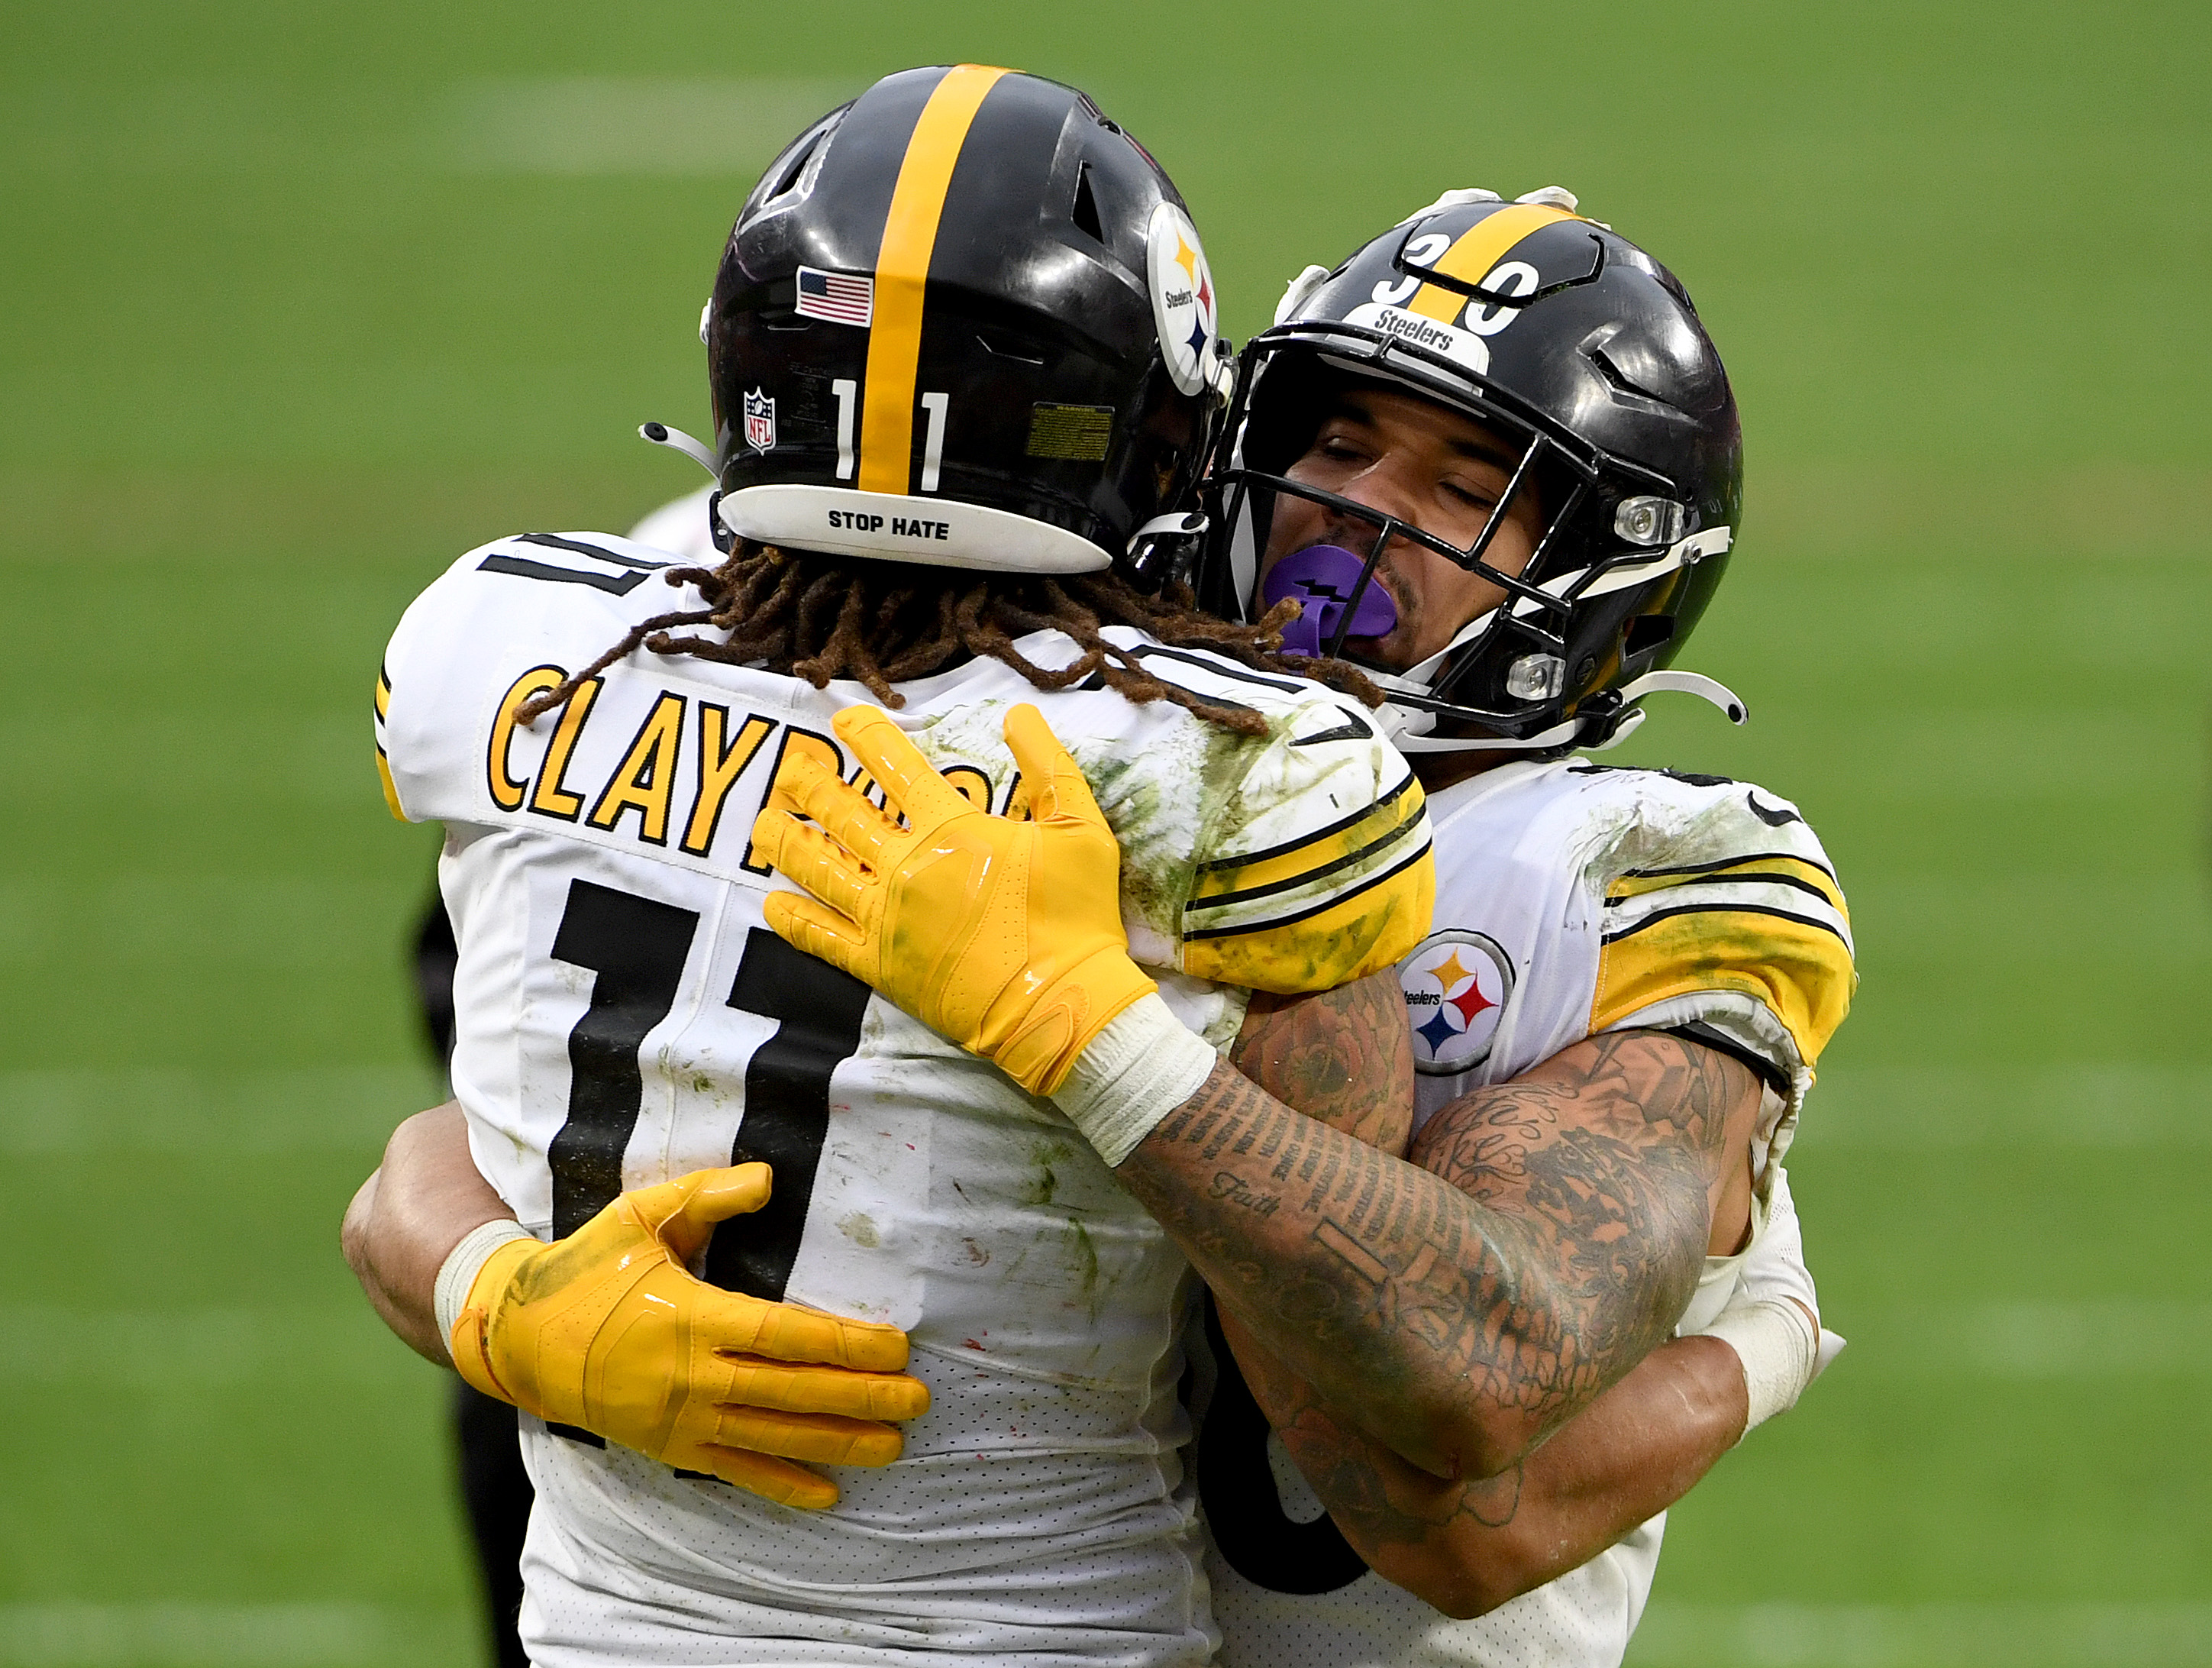 Chase Claypool #11 and James Conner #30 of the Pittsburgh Steelers celebrate a touchdown against the Cleveland Browns in the fourth quarter at FirstEnergy Stadium on January 03, 2021 in Cleveland, Ohio.